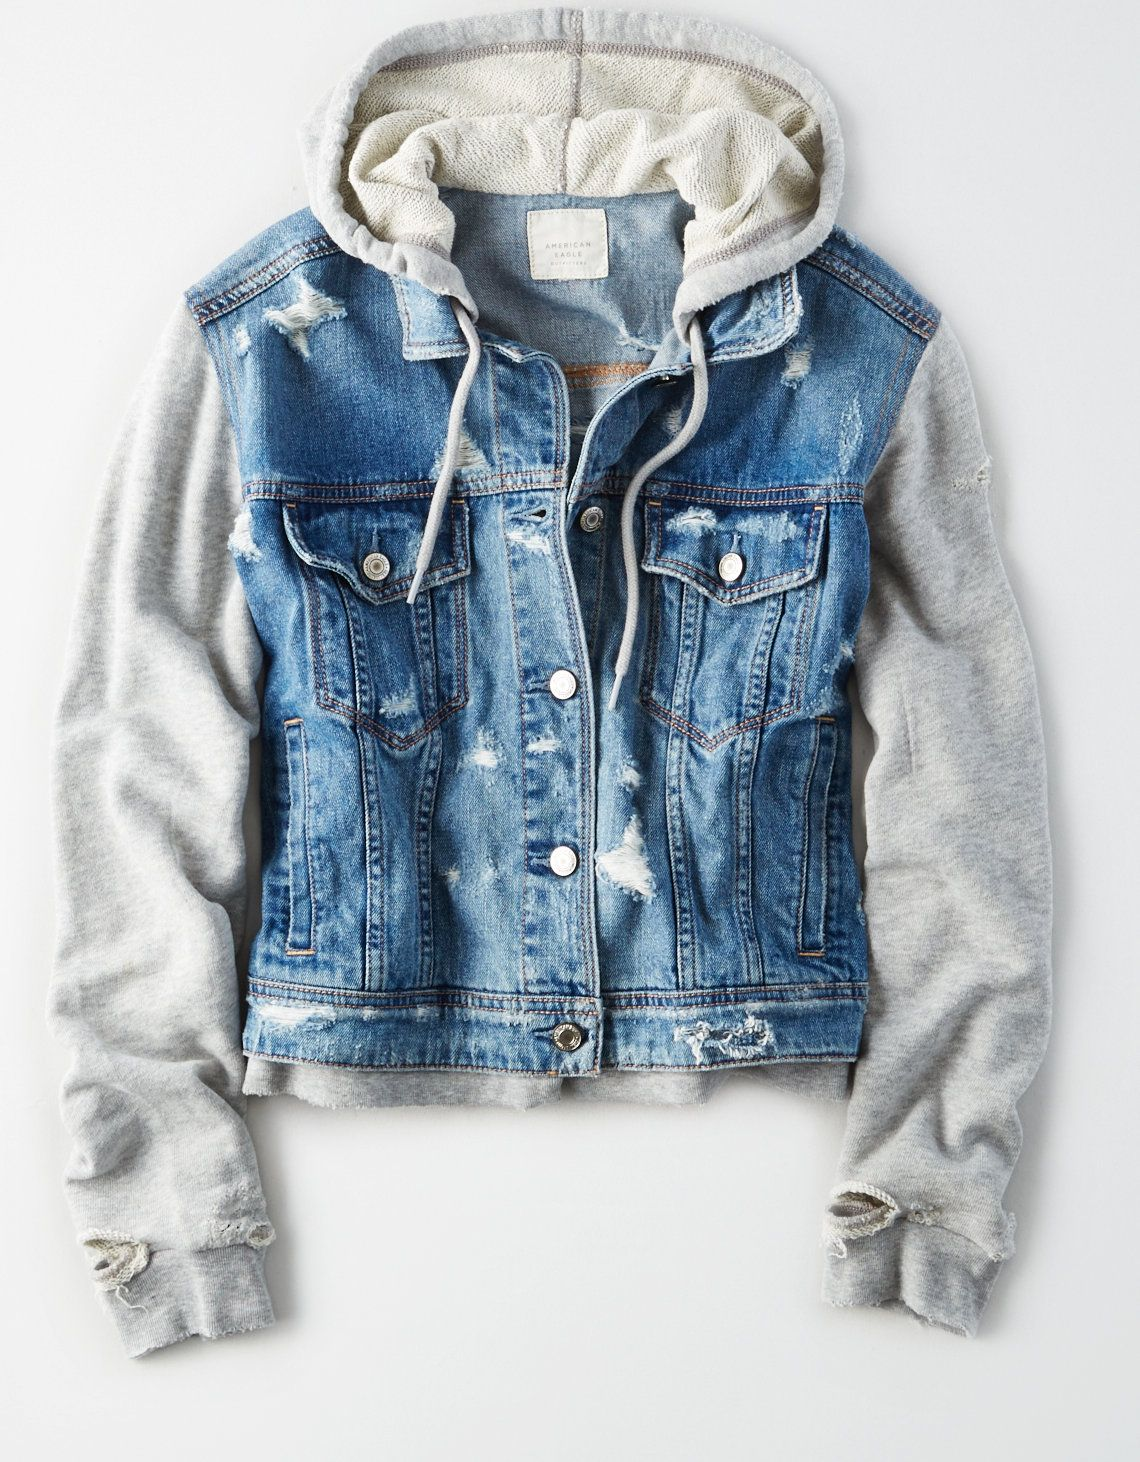 Pin By Nory Tinello On Products That I Love Denim Jacket With Hoodie Hoodie Jacket Outfit Denim Hoodie [ 1462 x 1140 Pixel ]